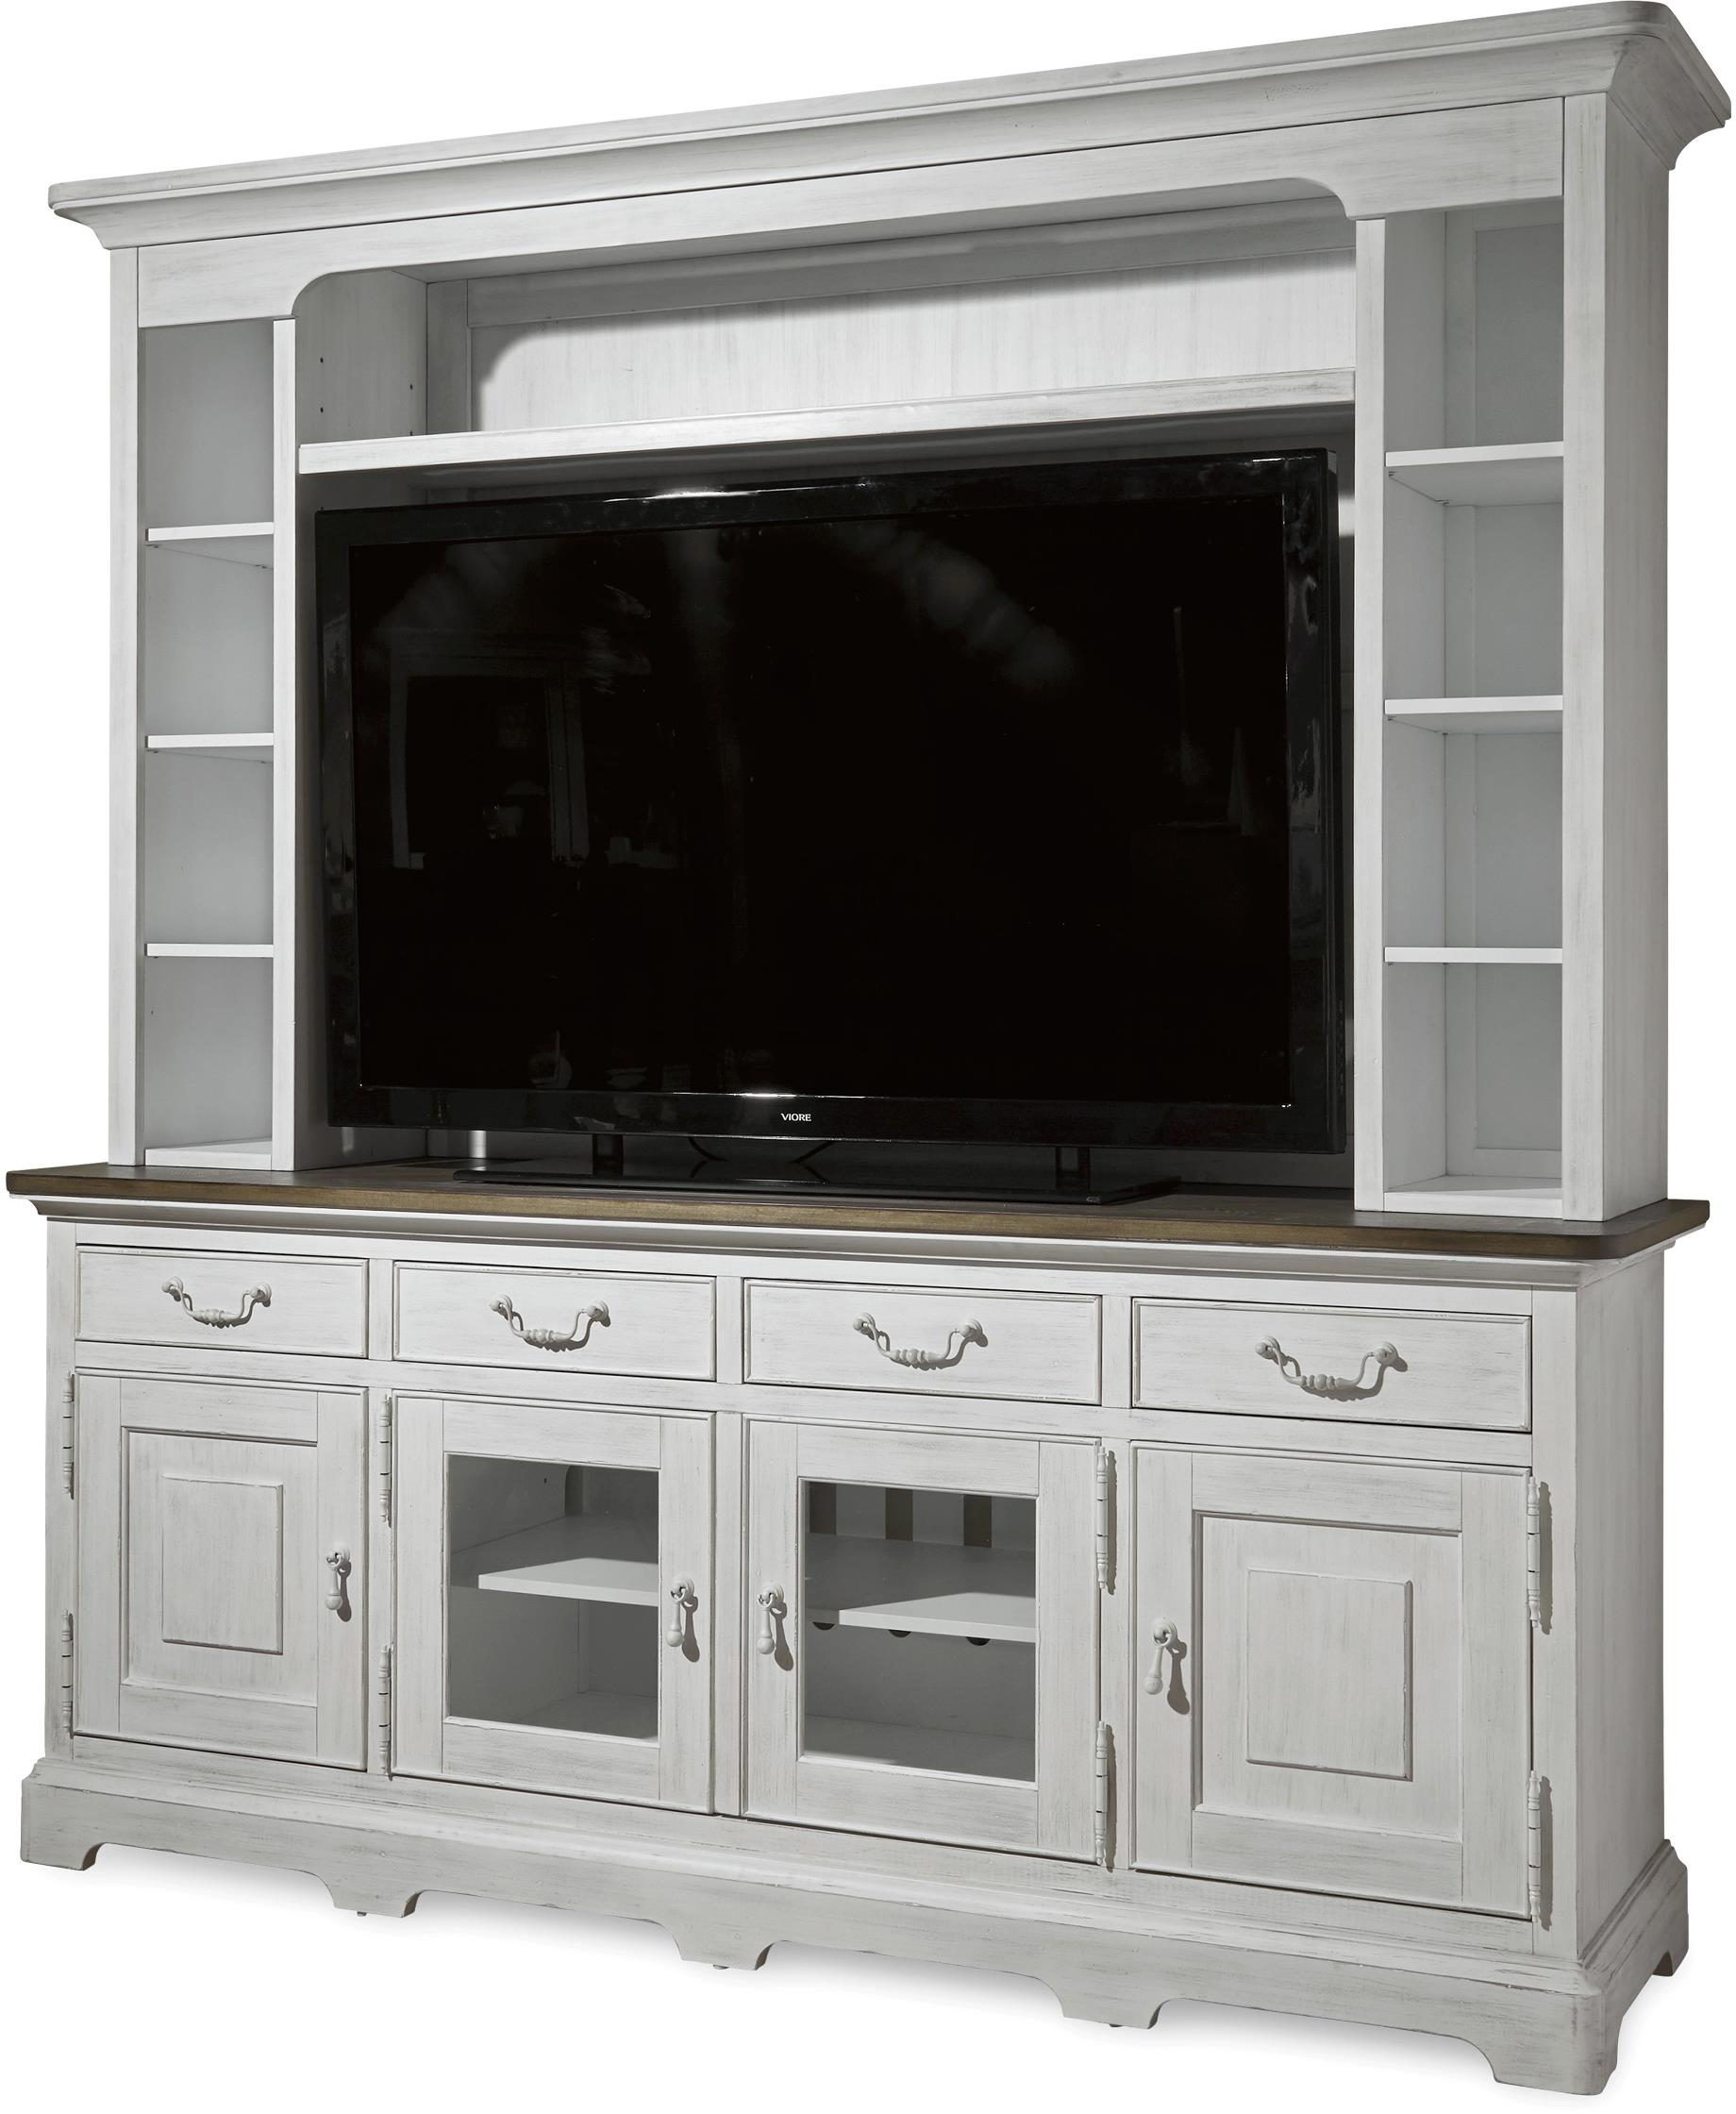 Universal Dogwood Console with Deck - Item Number: 597A966C